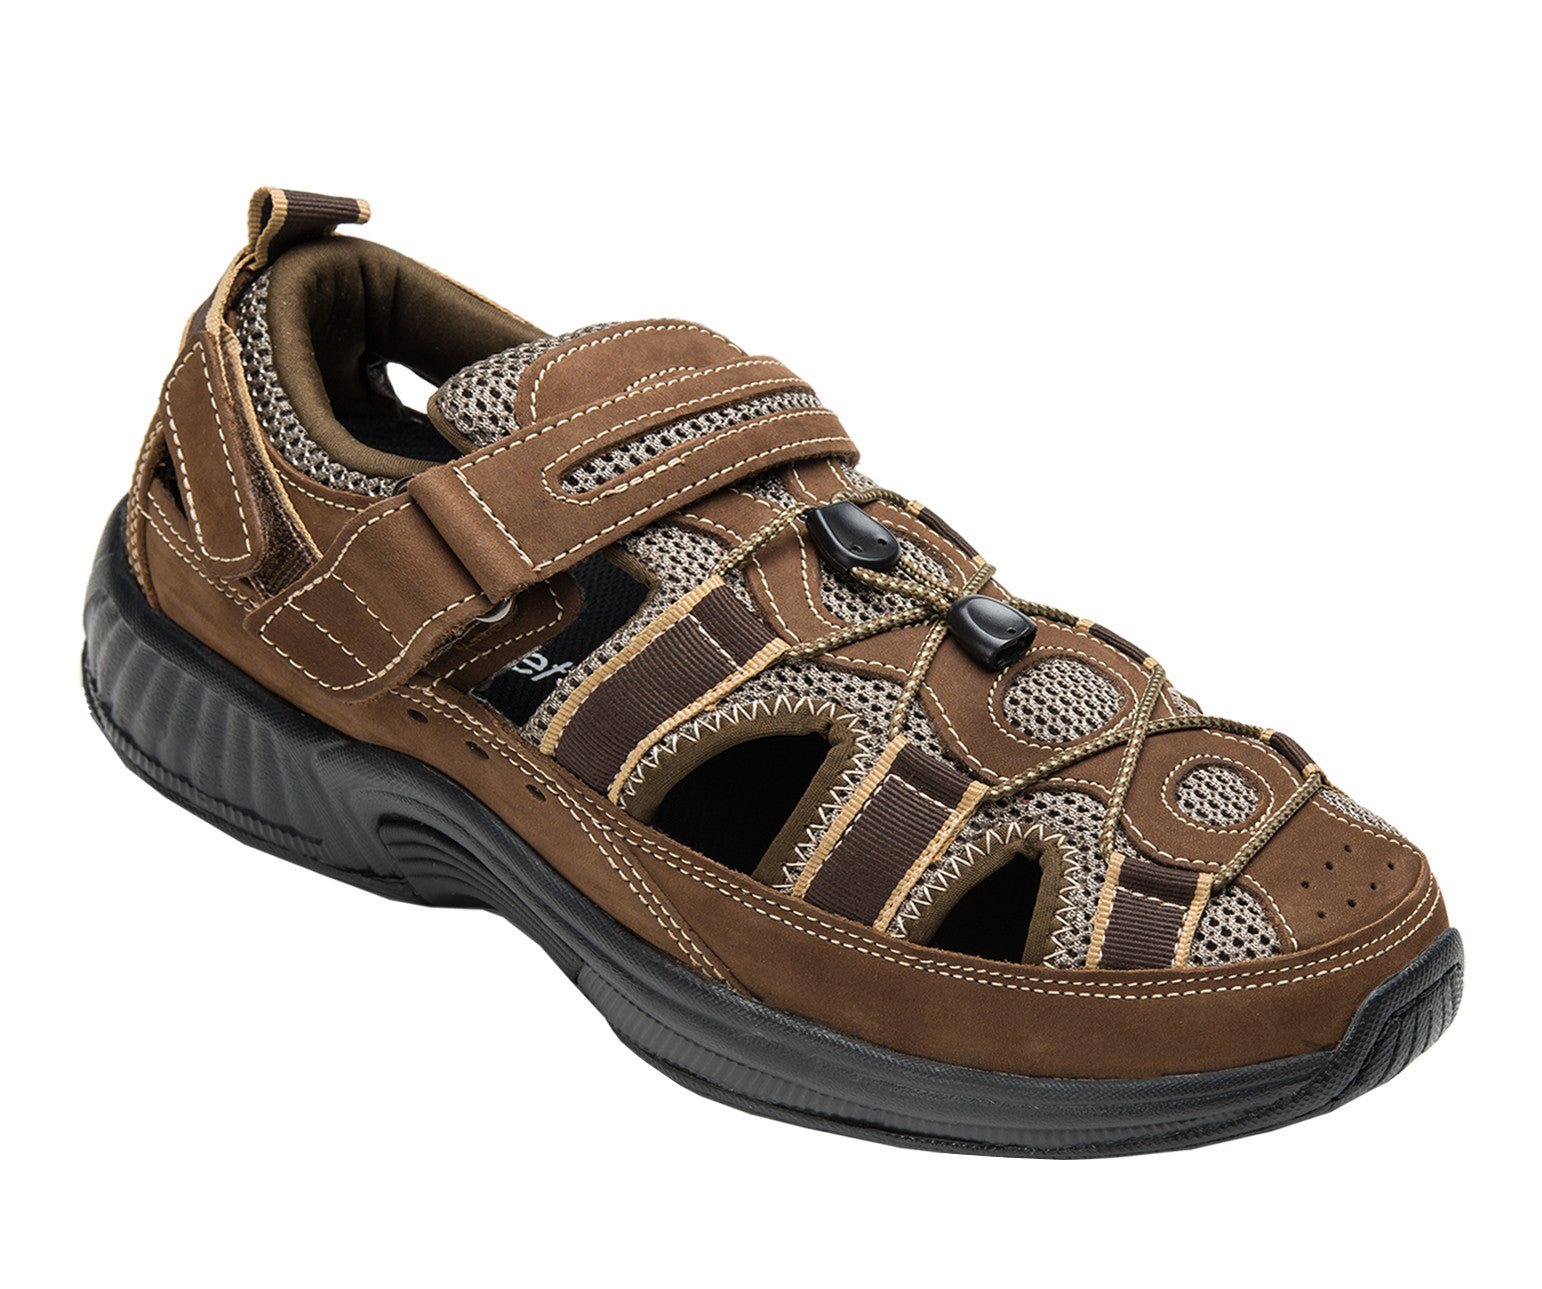 Orthofeet 573 Clearwater Men's Sandal